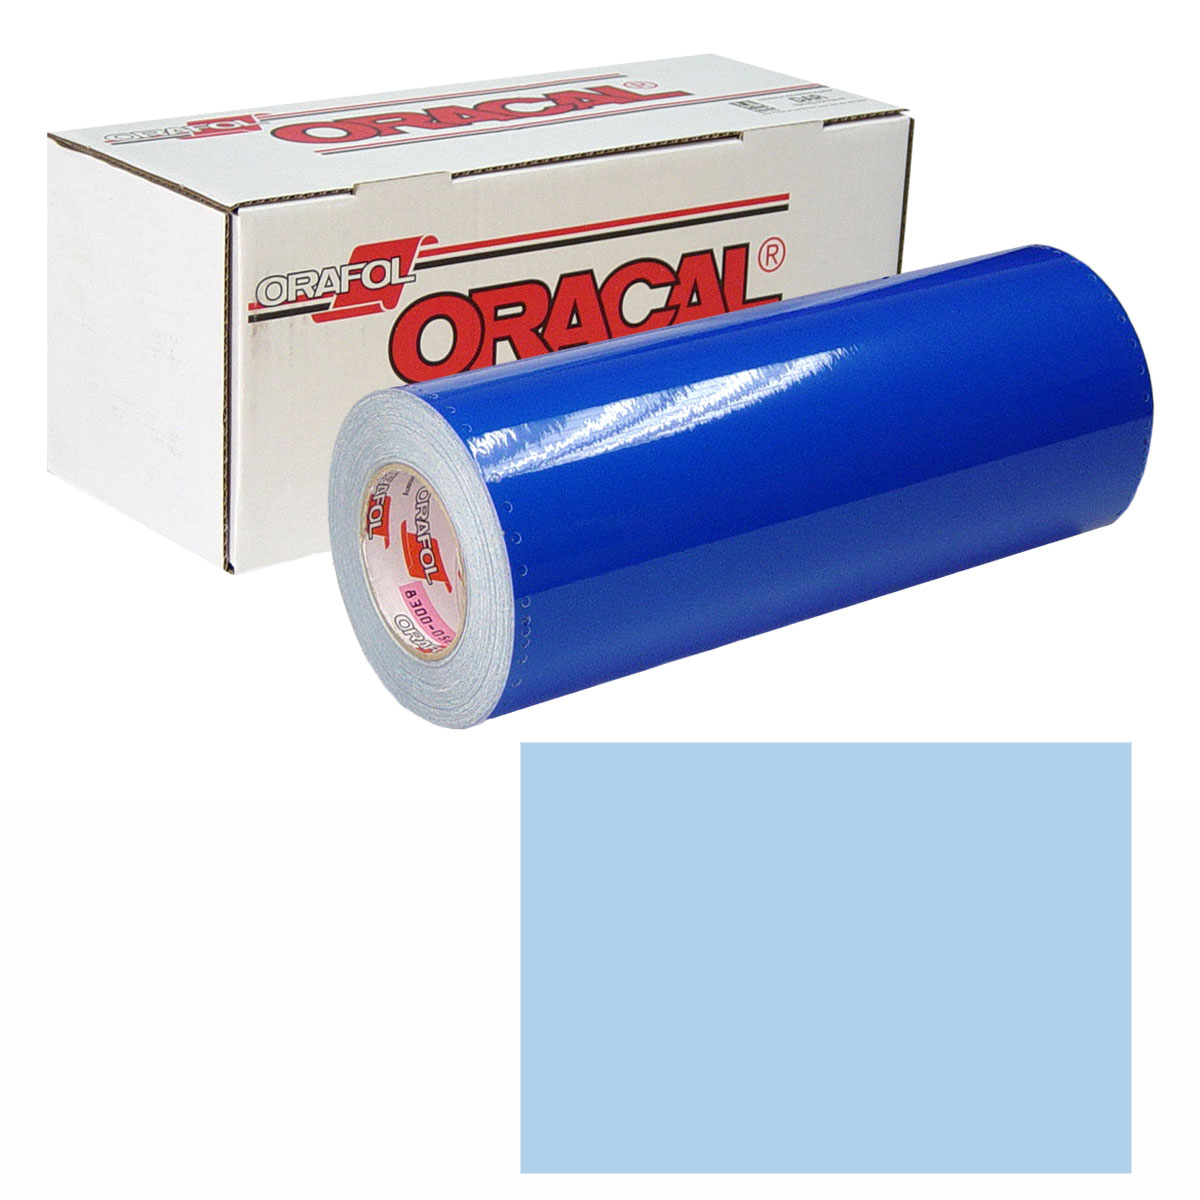 ORACAL 631 15In X 10Yd 172 Powder Blue